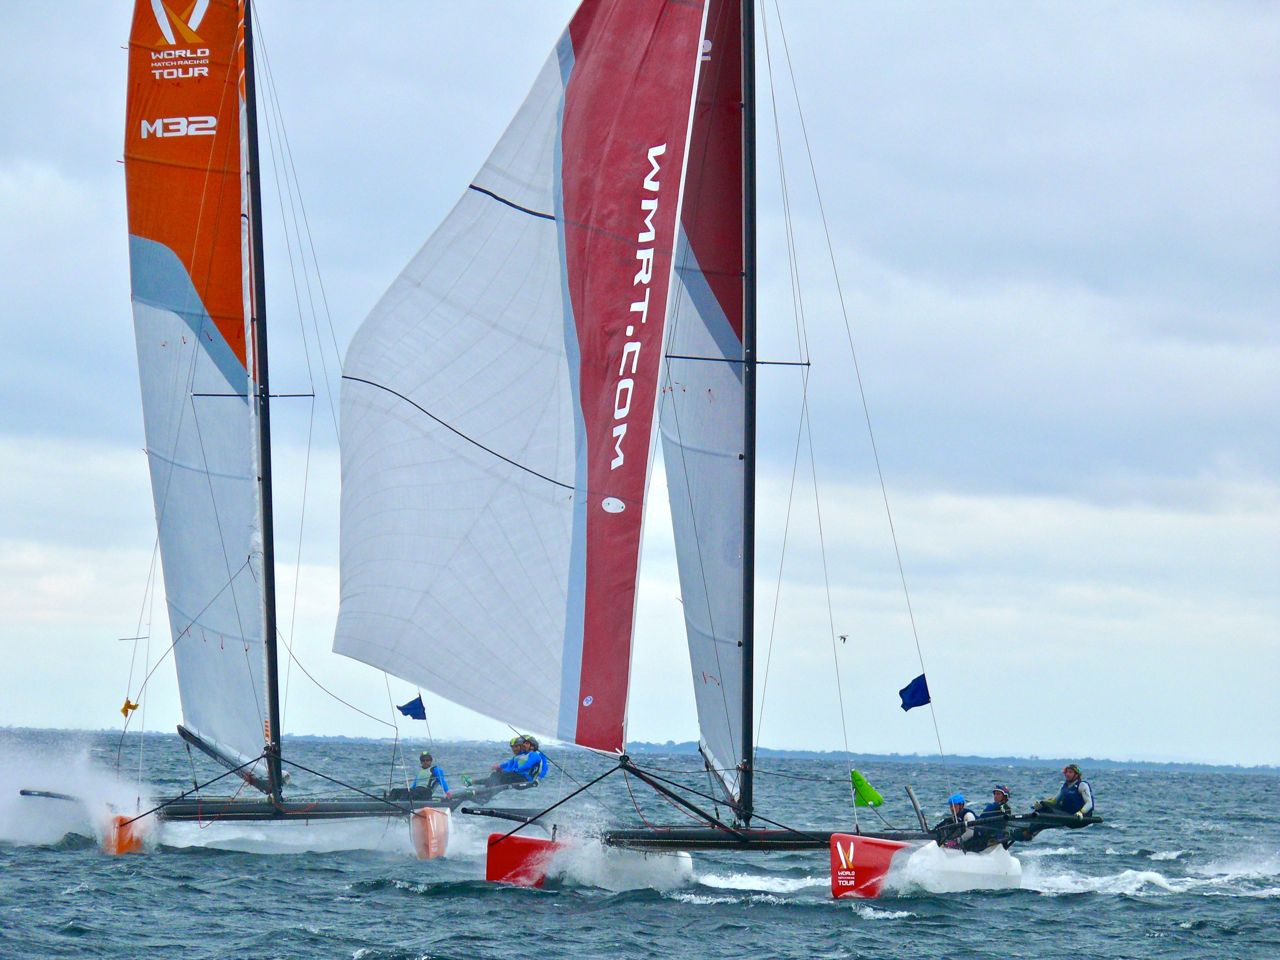 DAVID GILMOUR LEADS AFTER ACTION PACKED DAY AFLOAT